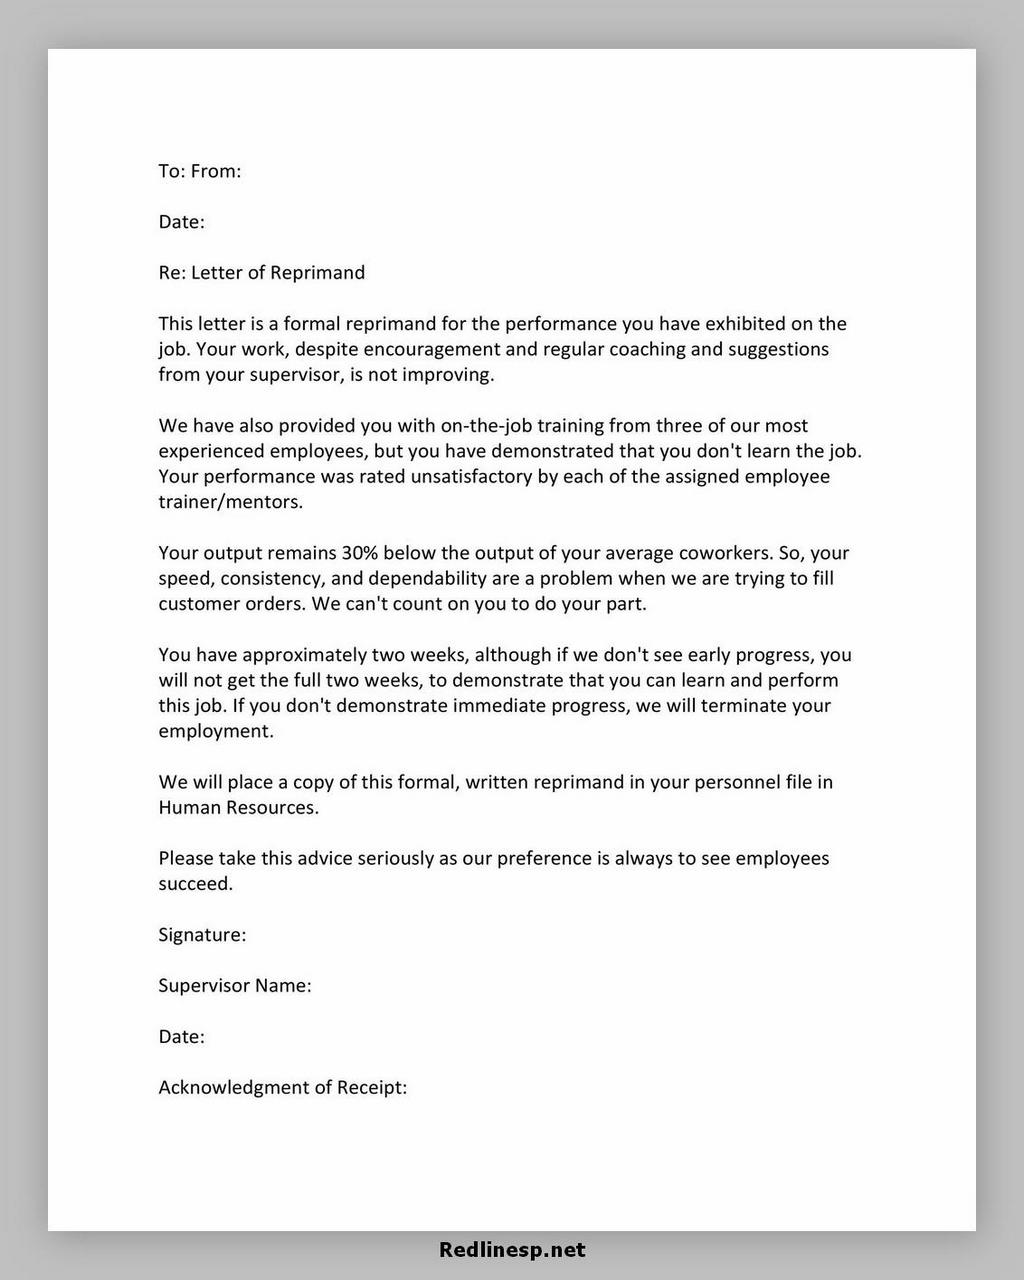 letter of reprimand 19